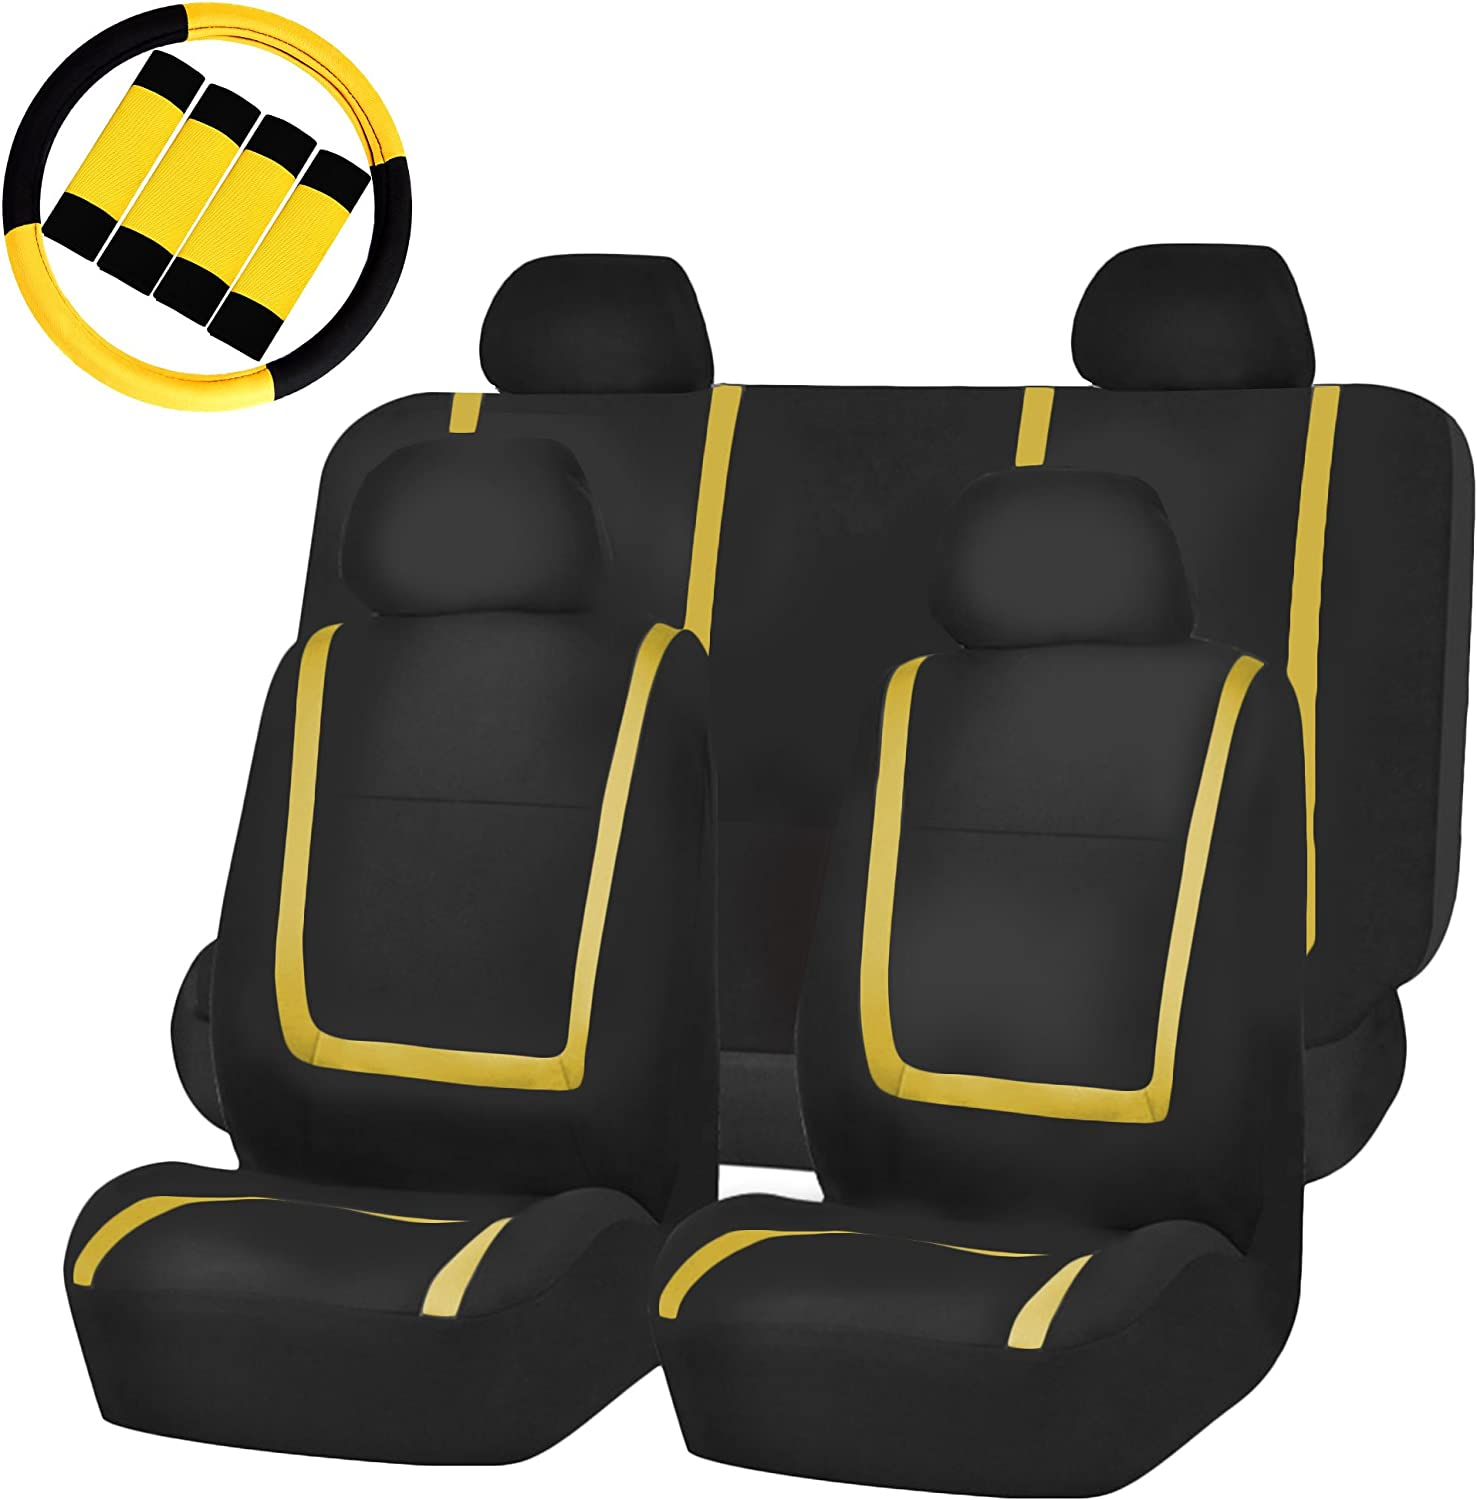 FH Group FH-FB032114 Unique Flat Cloth Full Set Car Seat Covers, Yellow/Black with FH2033 Steering Wheel Cover and Seat Belt Pads- Fit Most Car, Truck, SUV, or Van